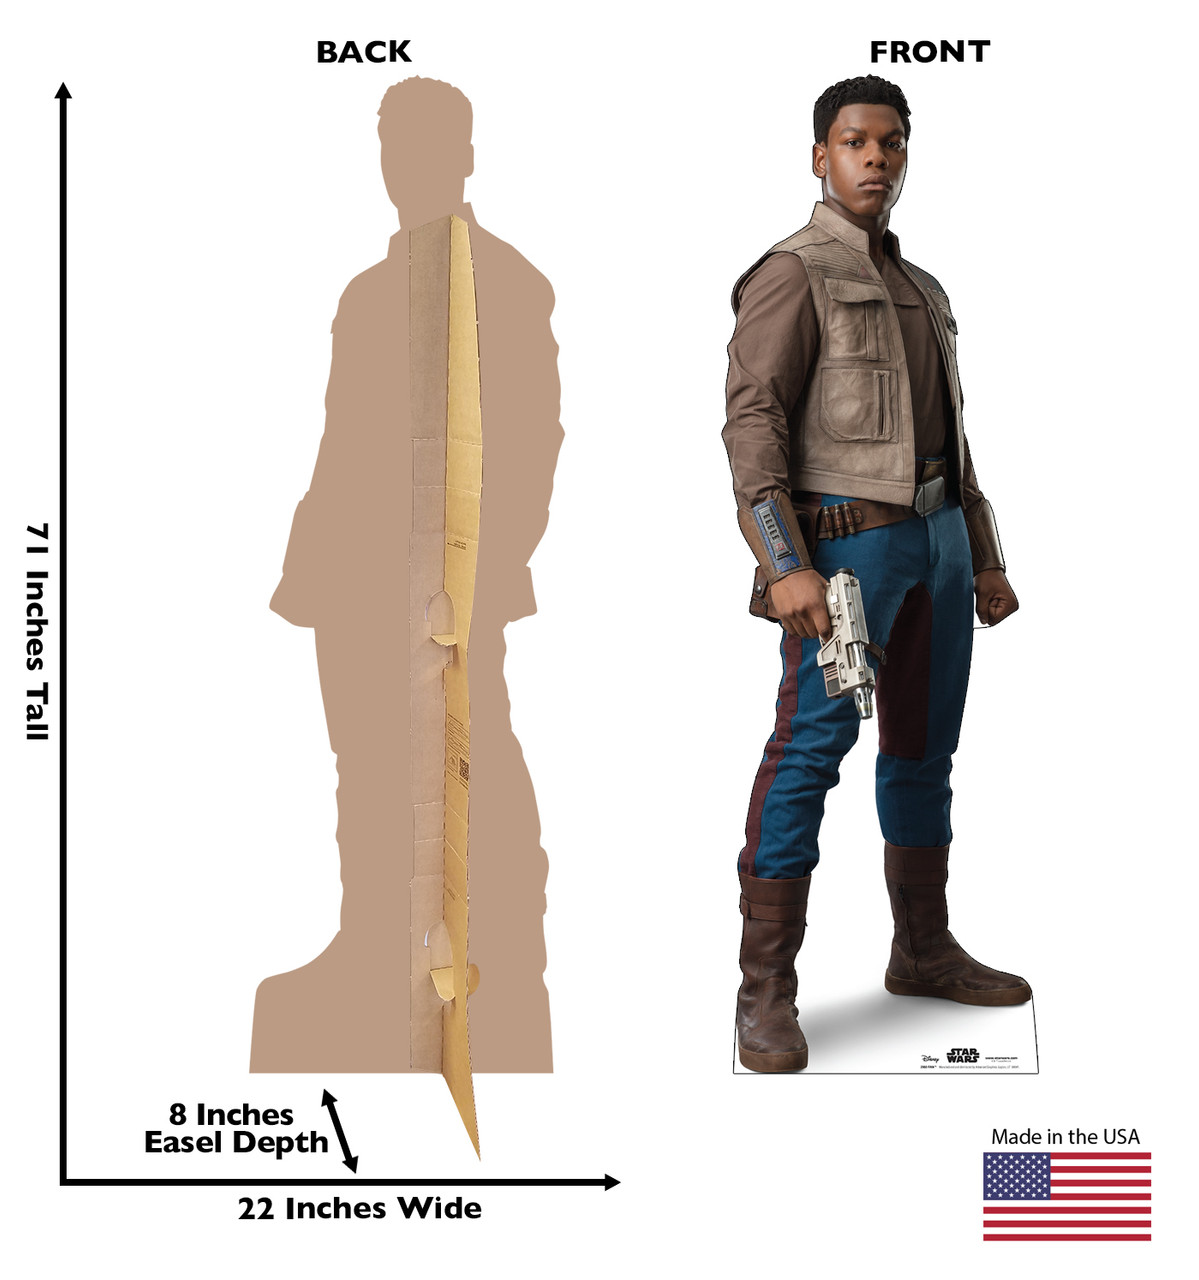 Life-size cardboard standee of Finn™ (Star Wars IX) with back and front dimensions.